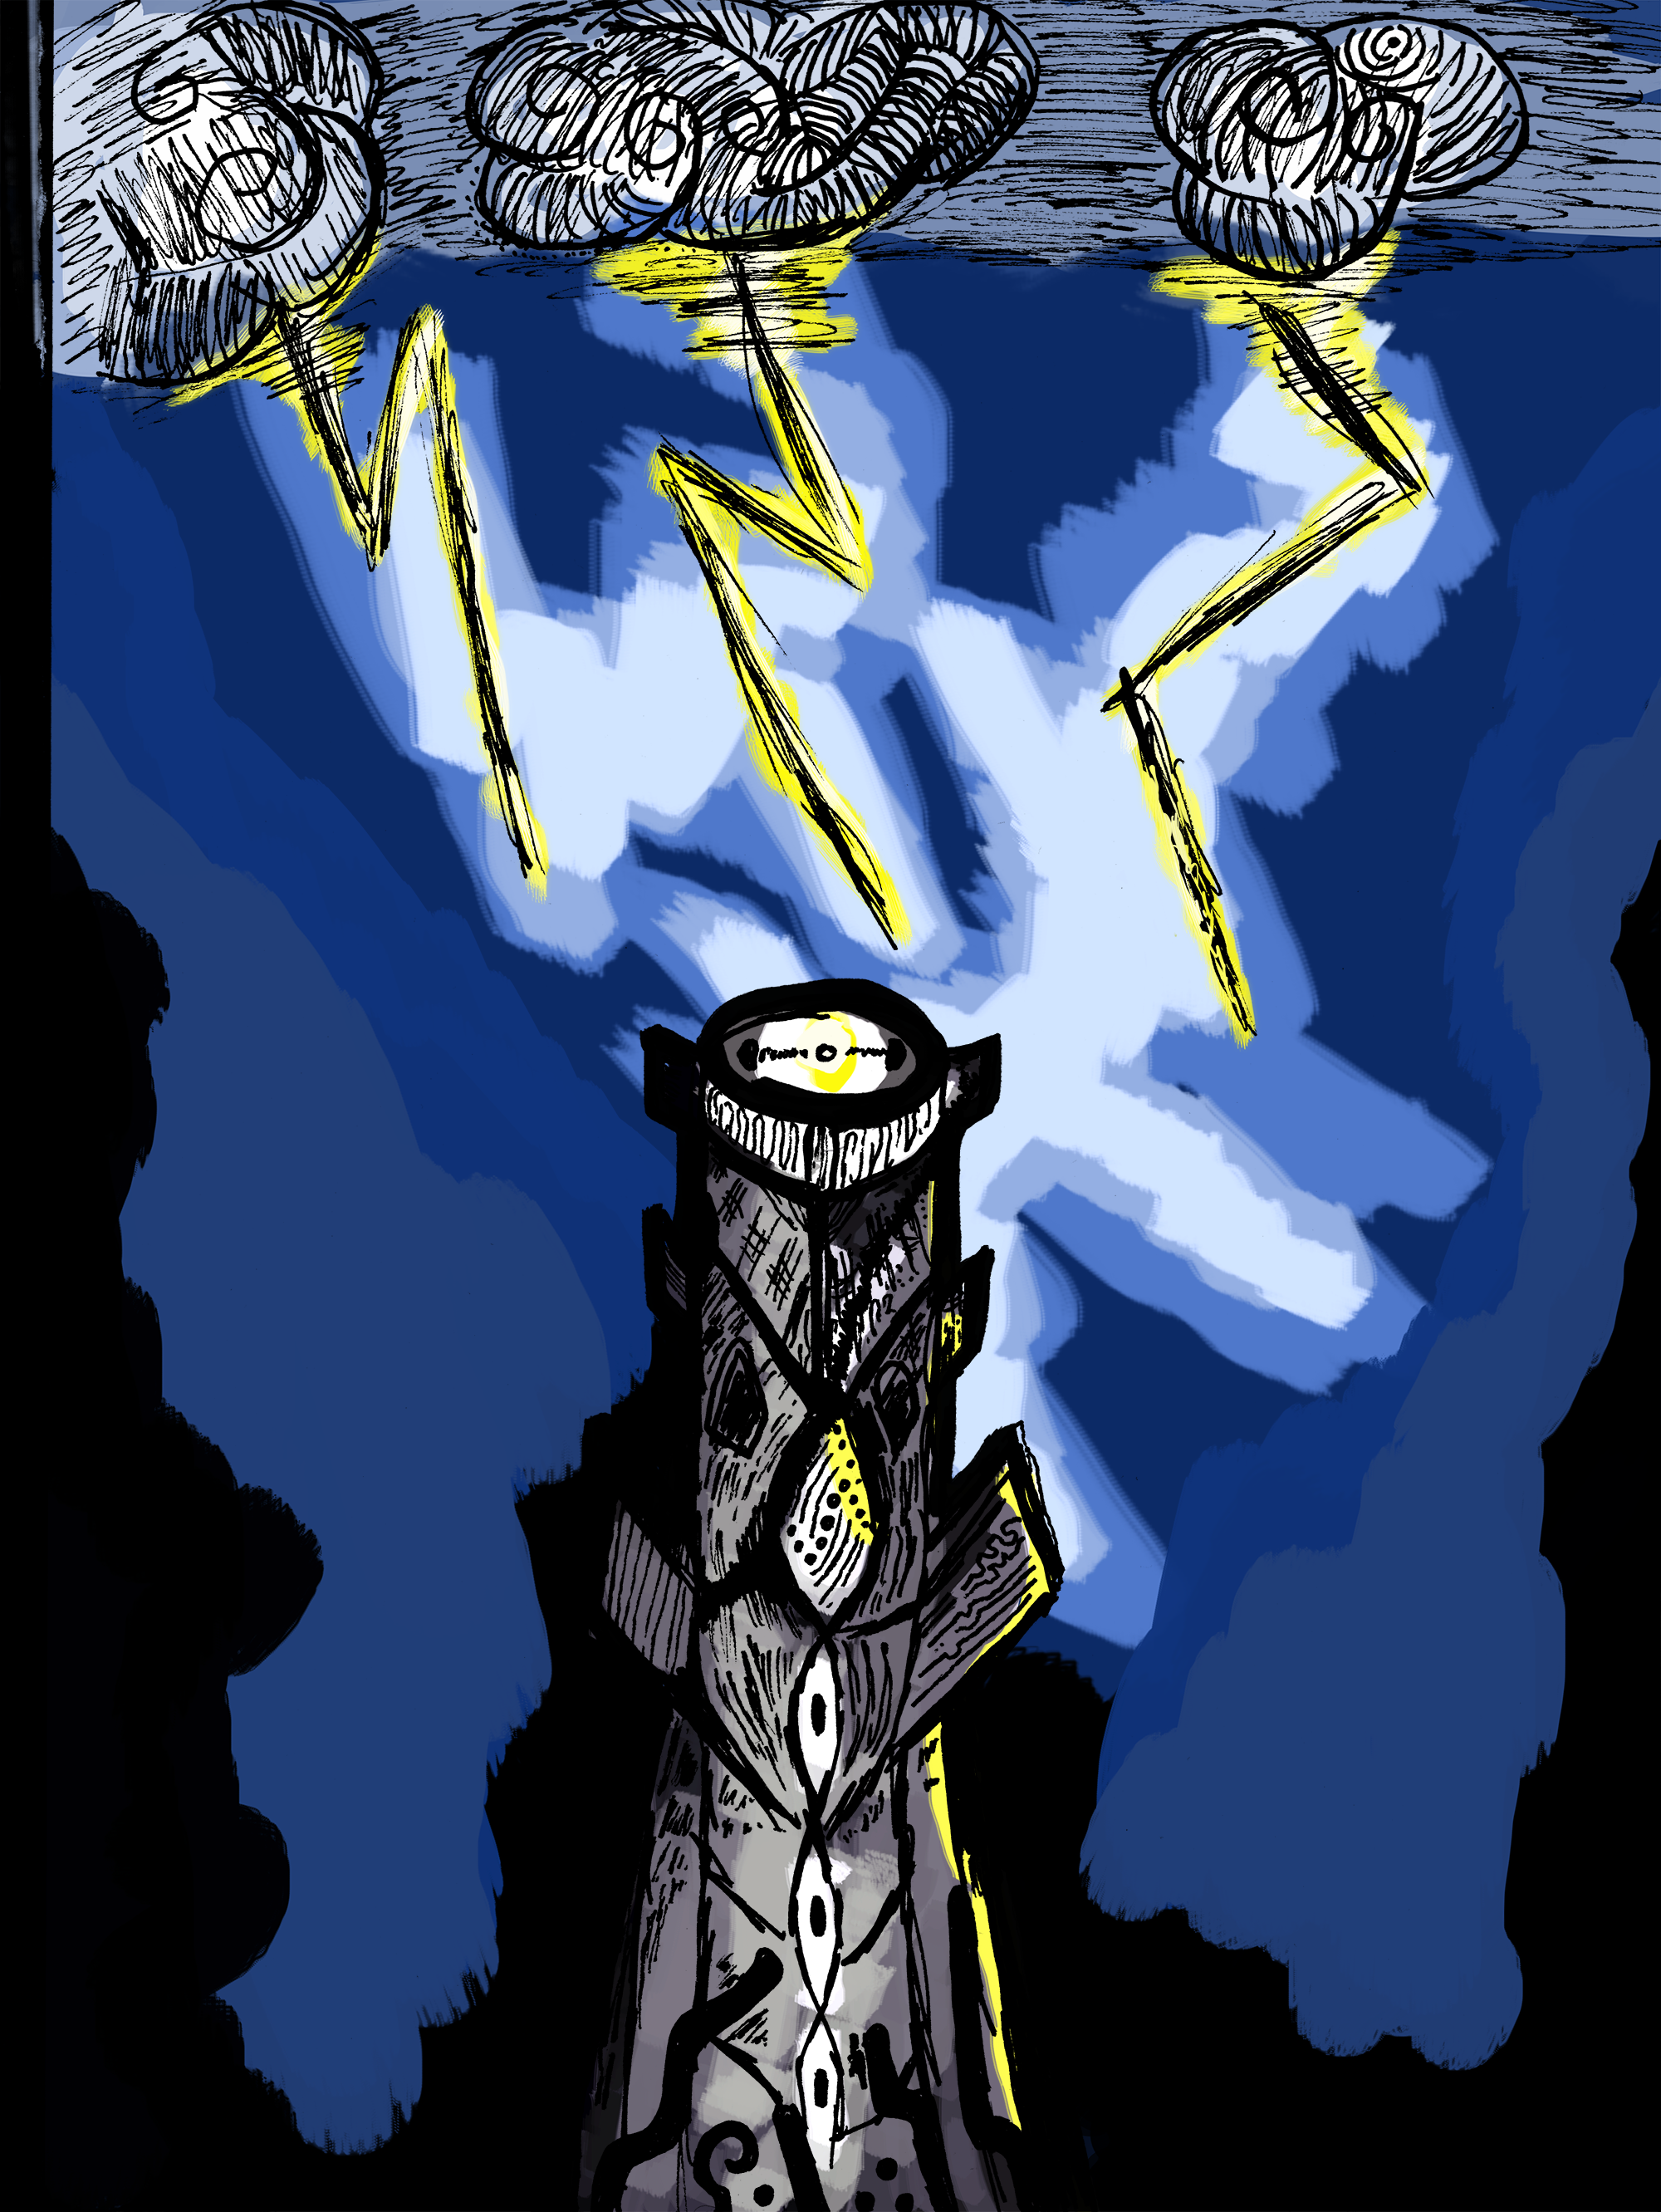 The - Lord of Lightning decided to construct a forward observing post serving as his base of operations near the fog. With a snap of his mighty fingers he summoned a great tower atop an empty hill. The area nearby was barren since people could not live in peace near the mist.